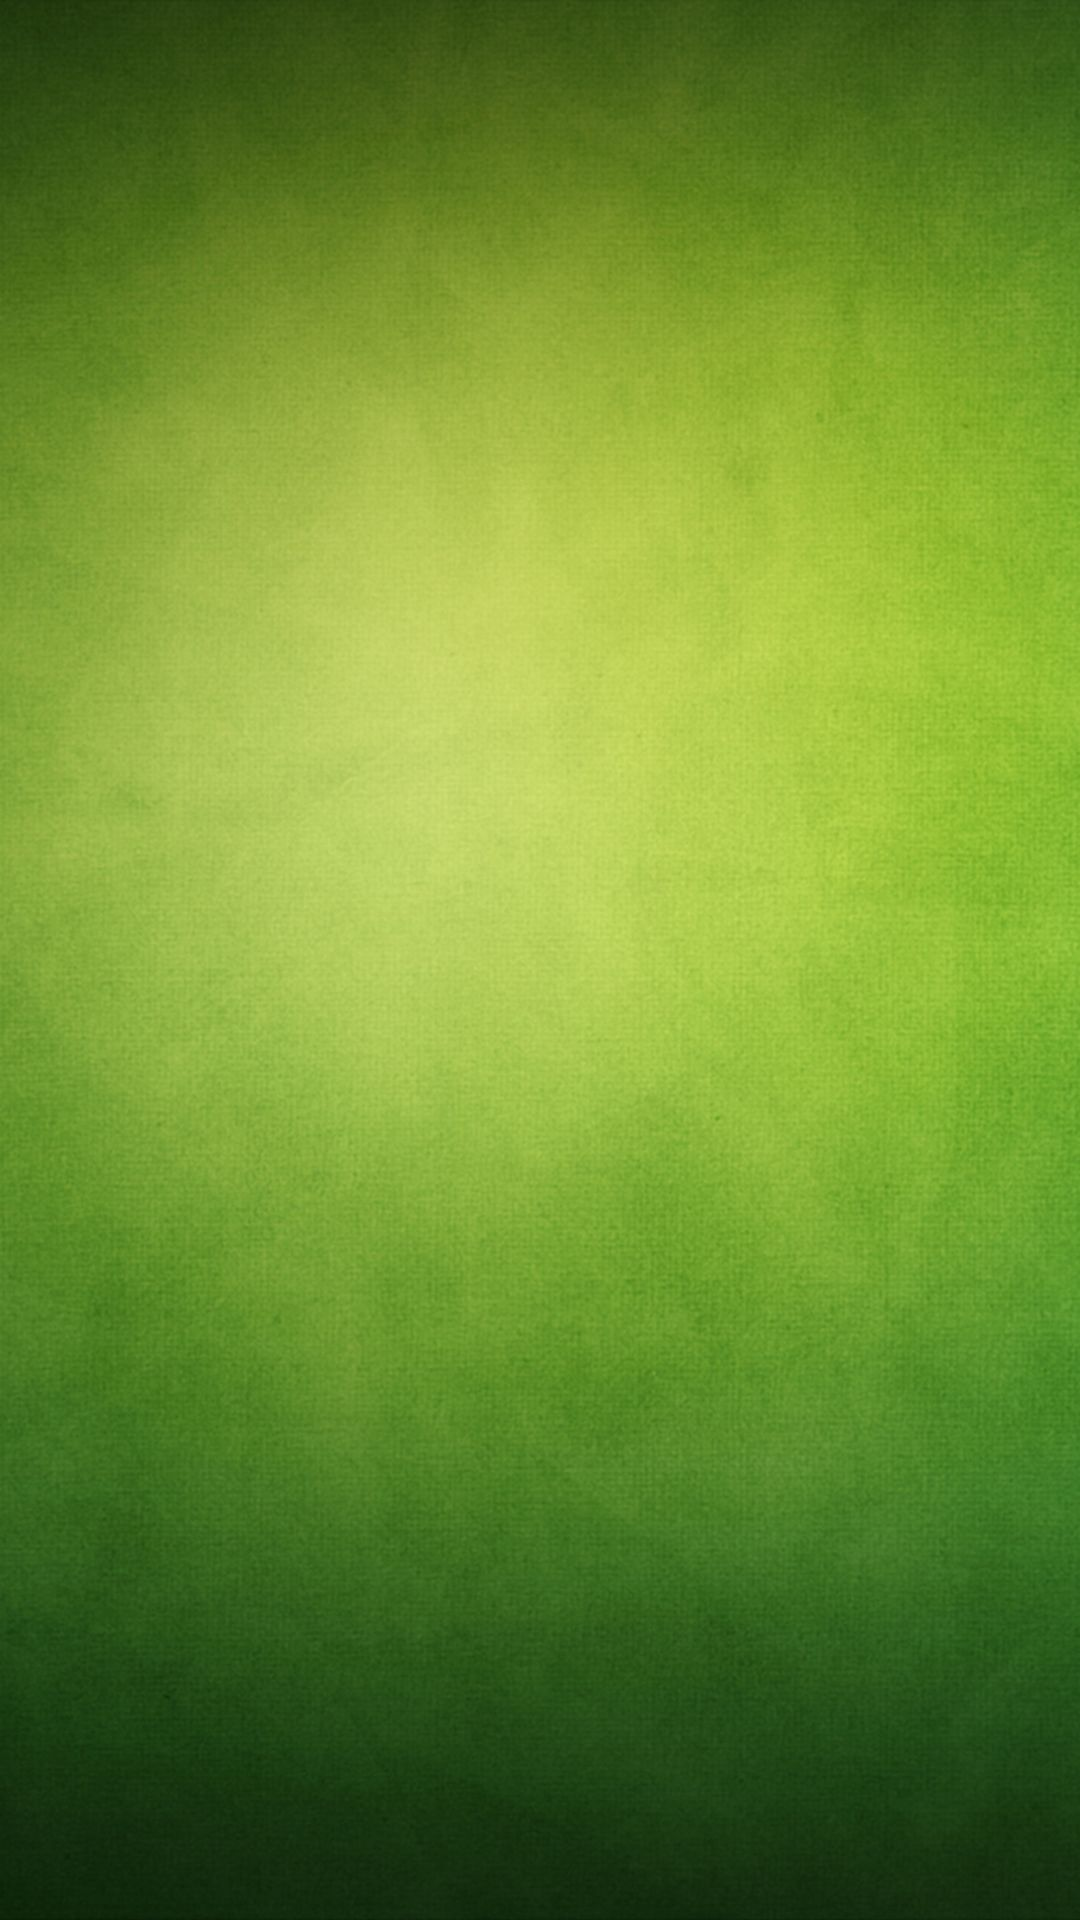 green iphone wallpapers 57 wallpapers hd wallpapers